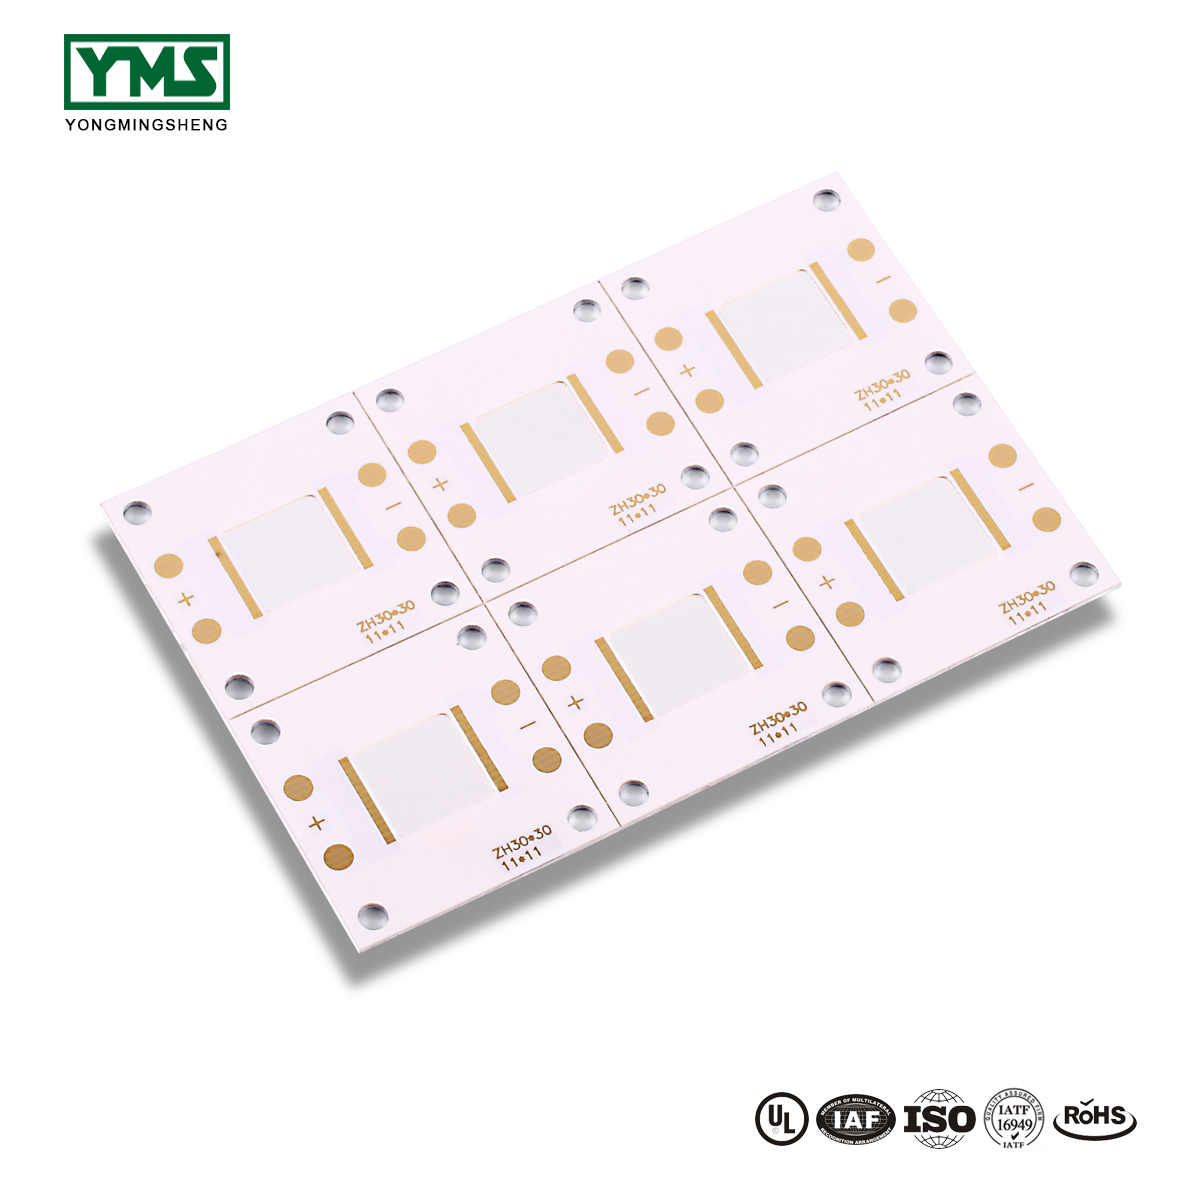 https://www.ymspcb.com/factory-cheap-aluminium-metal-core-pcb-1layer-mirror-aluminum-base-board-ymspcb-yongmingsheng.html